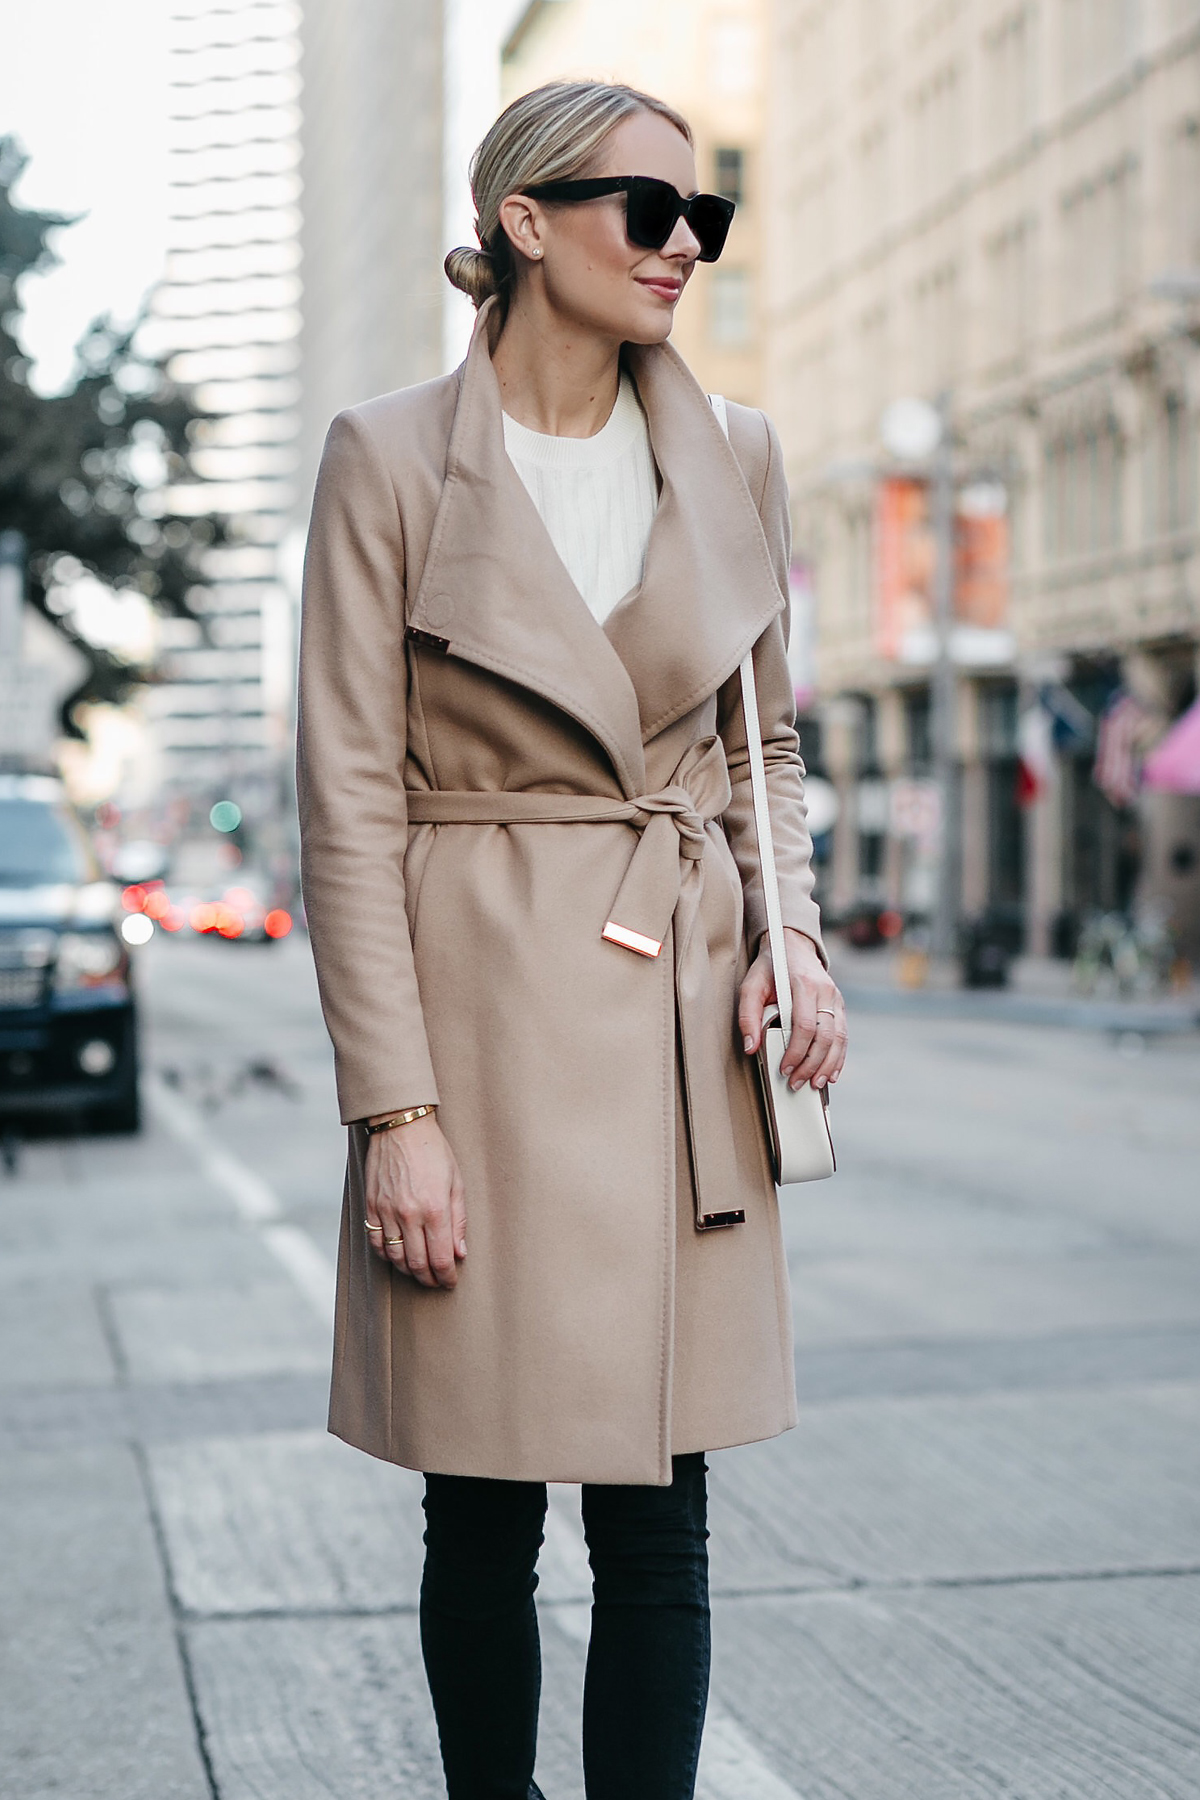 Blonde Woman Wearing Tan Wrap Coat Black Skinny Jeans Fashion Jackson Dallas Blogger Fashion Blogger Street Style